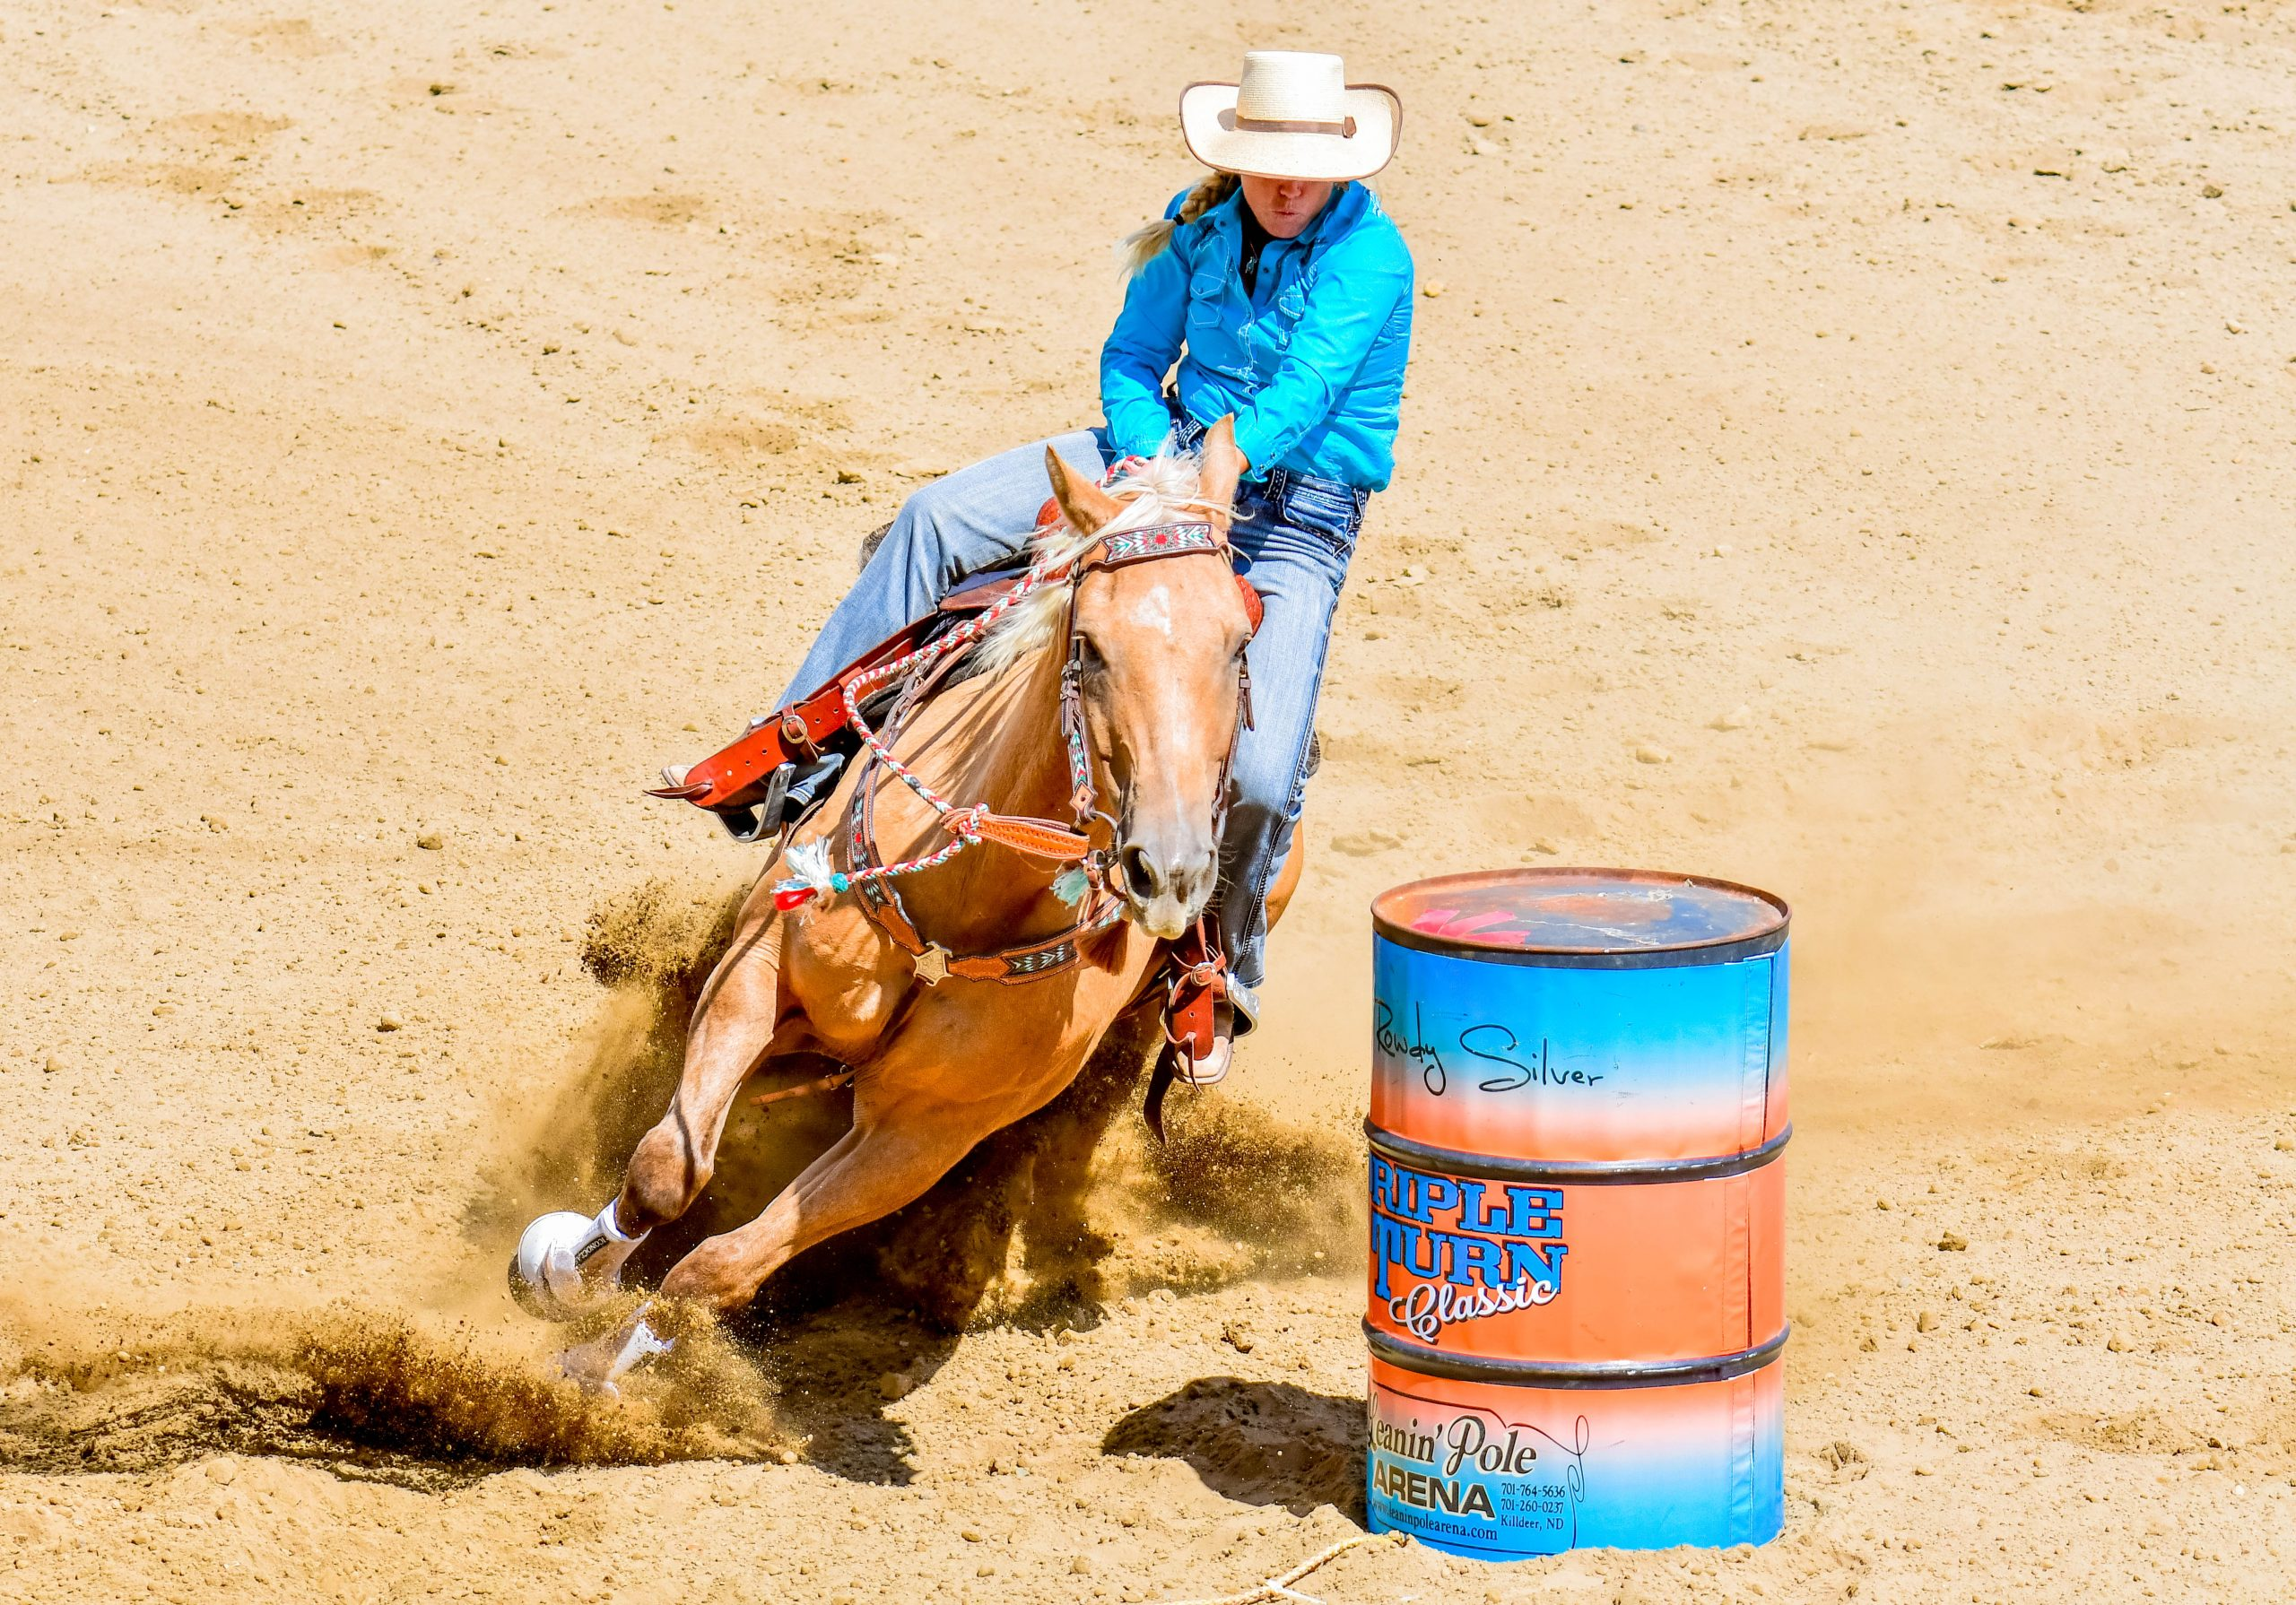 jenn zeller, dx ranch crew, barrel racing